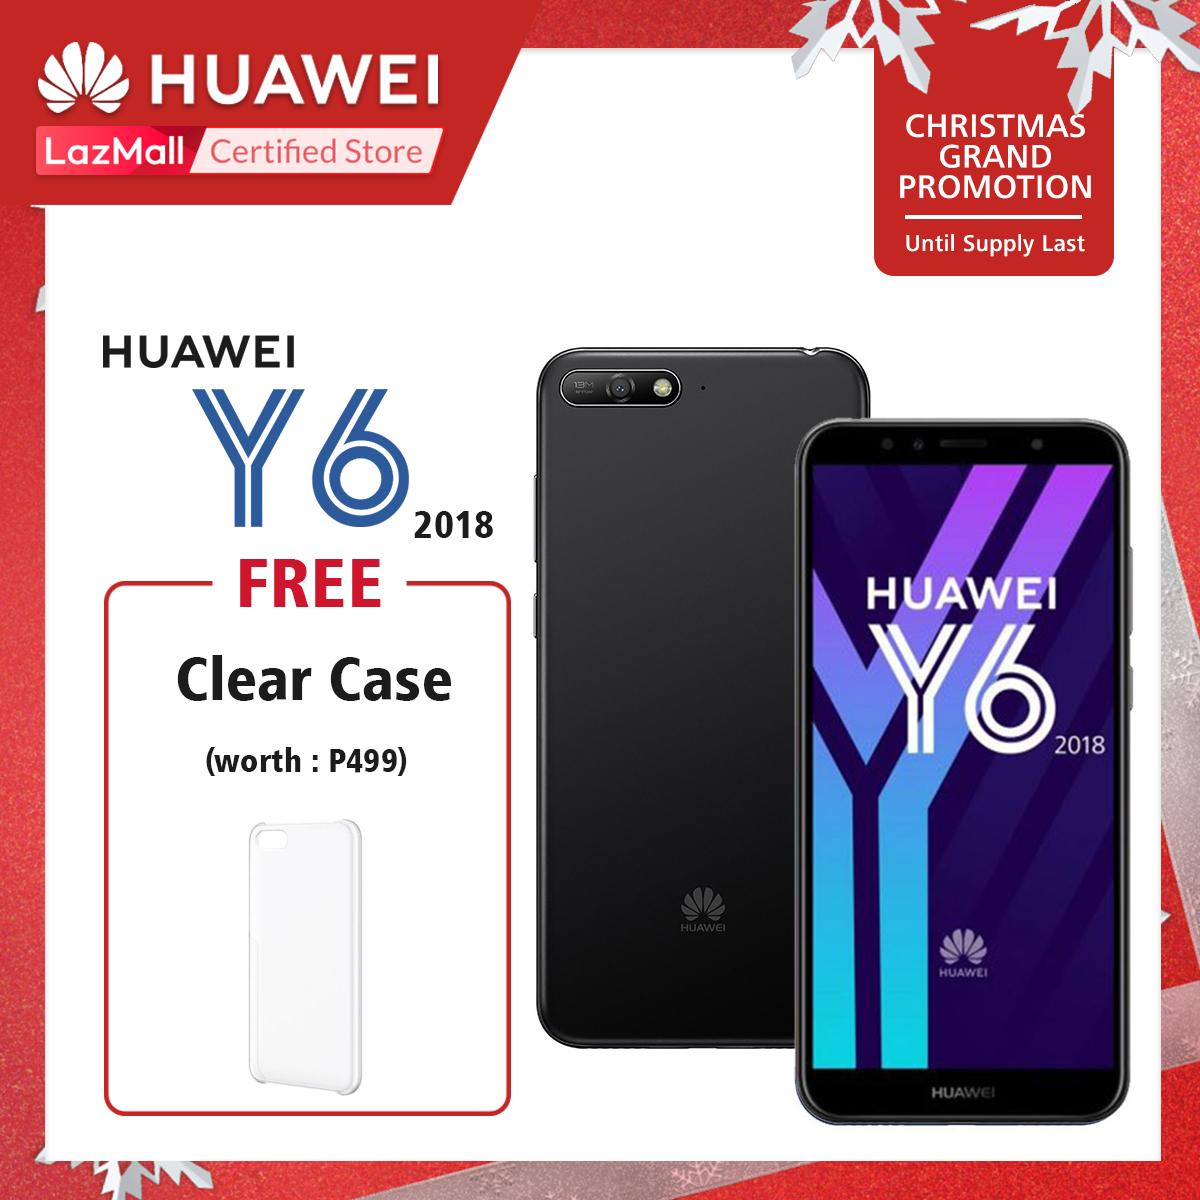 Huawei Philippines Phone For Sale Prices Reviews Lazada Skun Pcb Set 7500 5 Y6 2018 16gb Rom 2gb Ram With Free Clear Case